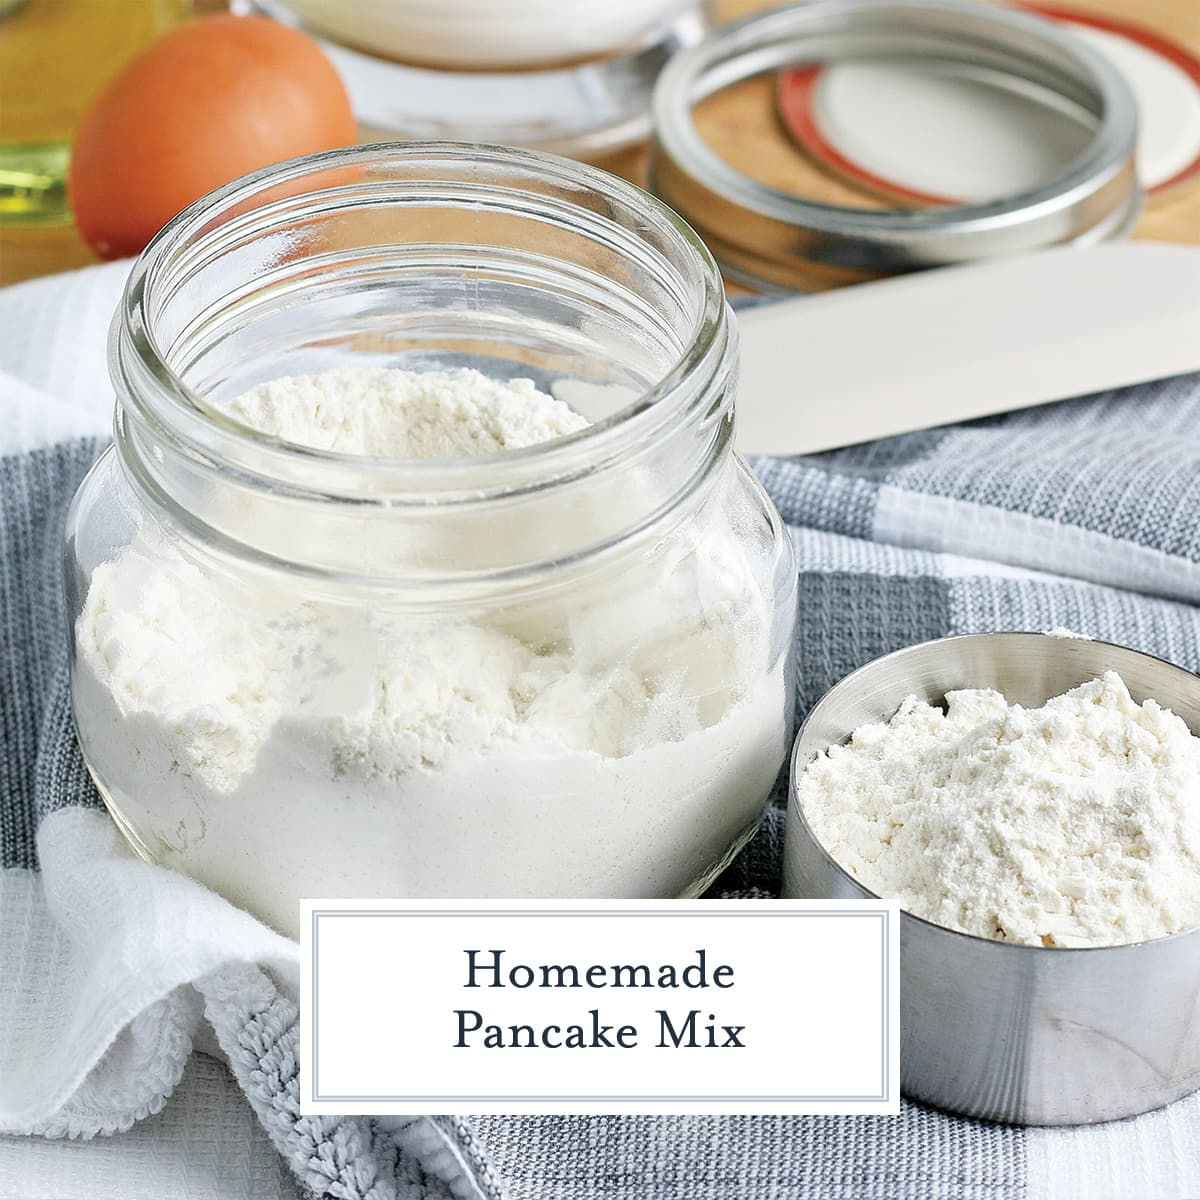 dry pancake mix in a small glass jar